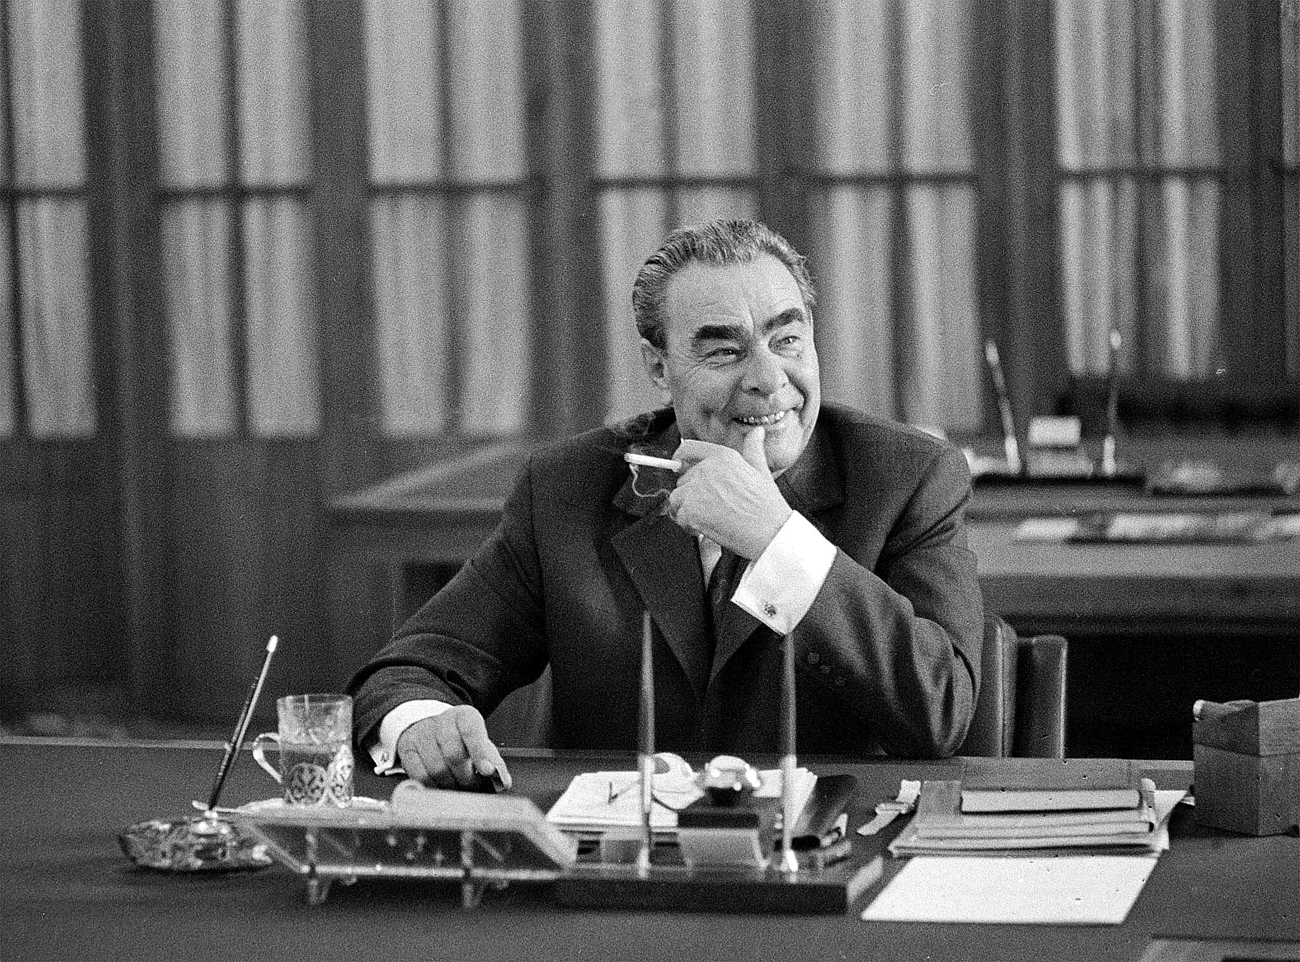 Even though Soviet citizens could get in trouble with the authorities for telling political jokes, during the Era of Stagnation, as the Brezhnev period was known, many people made fun of the all-seeing Communist Party and its leader. Photo: Leonid Brezhnev in his study in the Kremlin, Moscow.